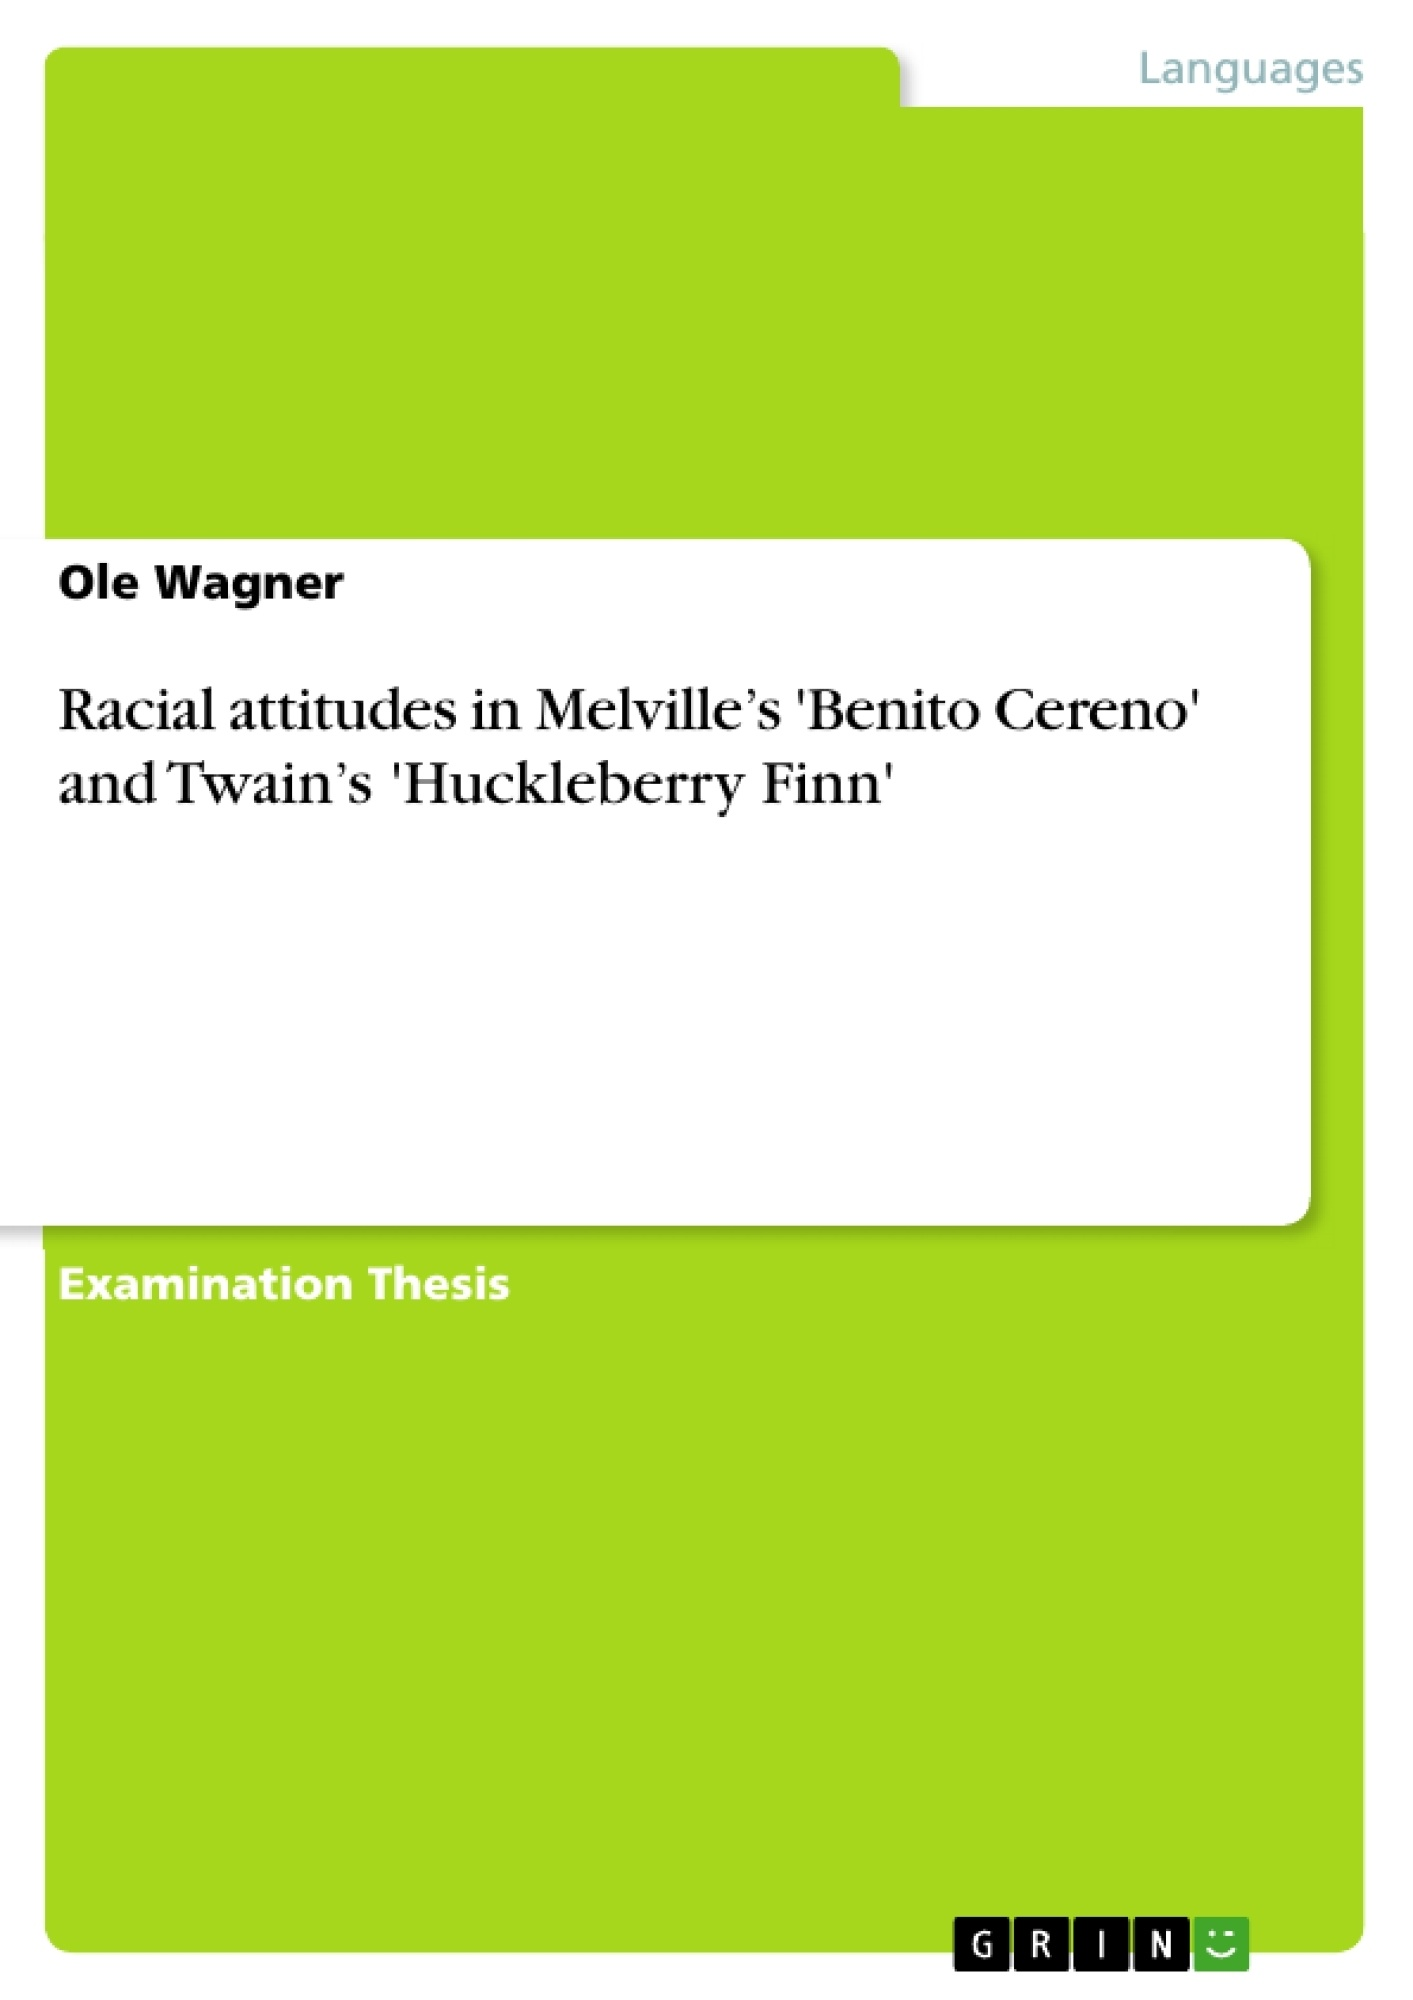 an analysis of the characteris of tom sawyer and huckleberry finn from mark twains works An analysis of the characteris of tom sawyer and huckleberry finn from mark twain's works pages 2 words 1,125 view full essay more essays like this:.